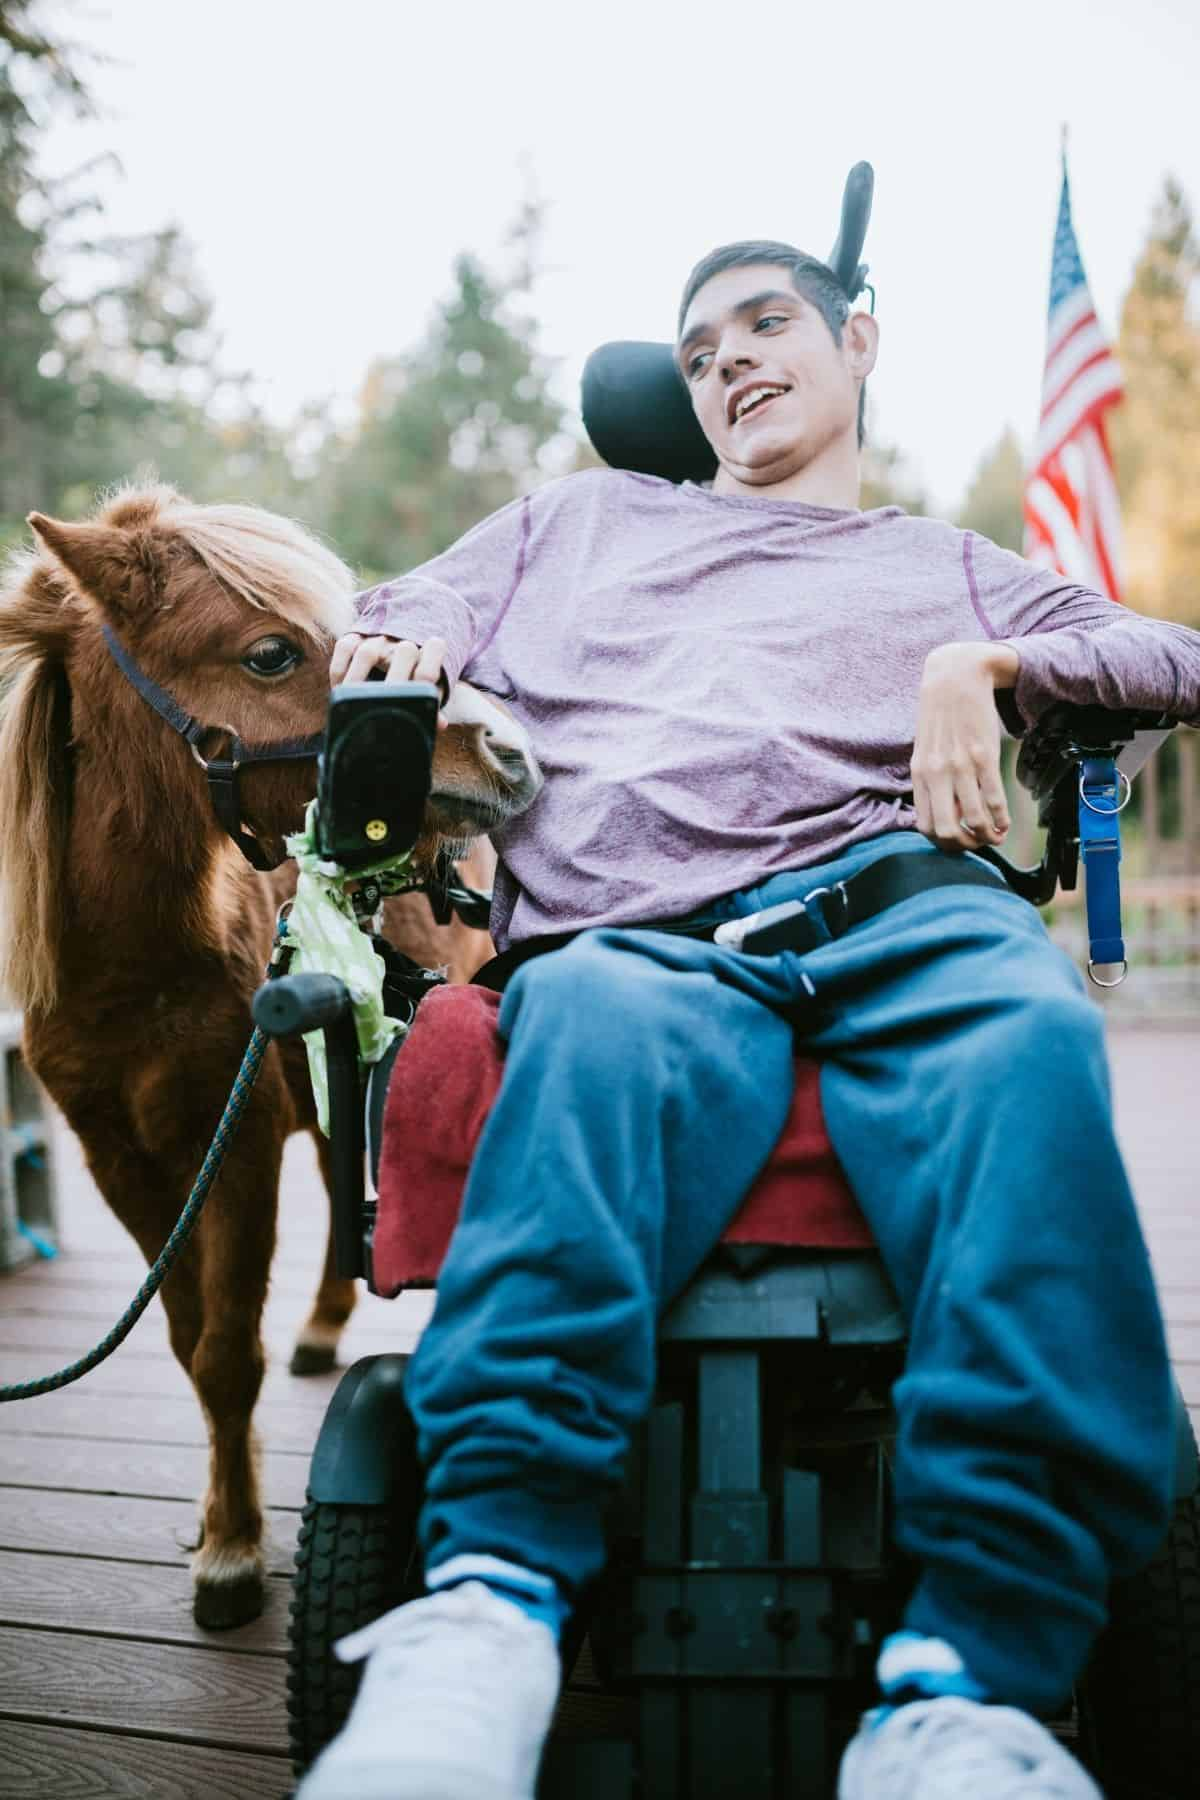 Man in purple shirt in wheelchair by horse